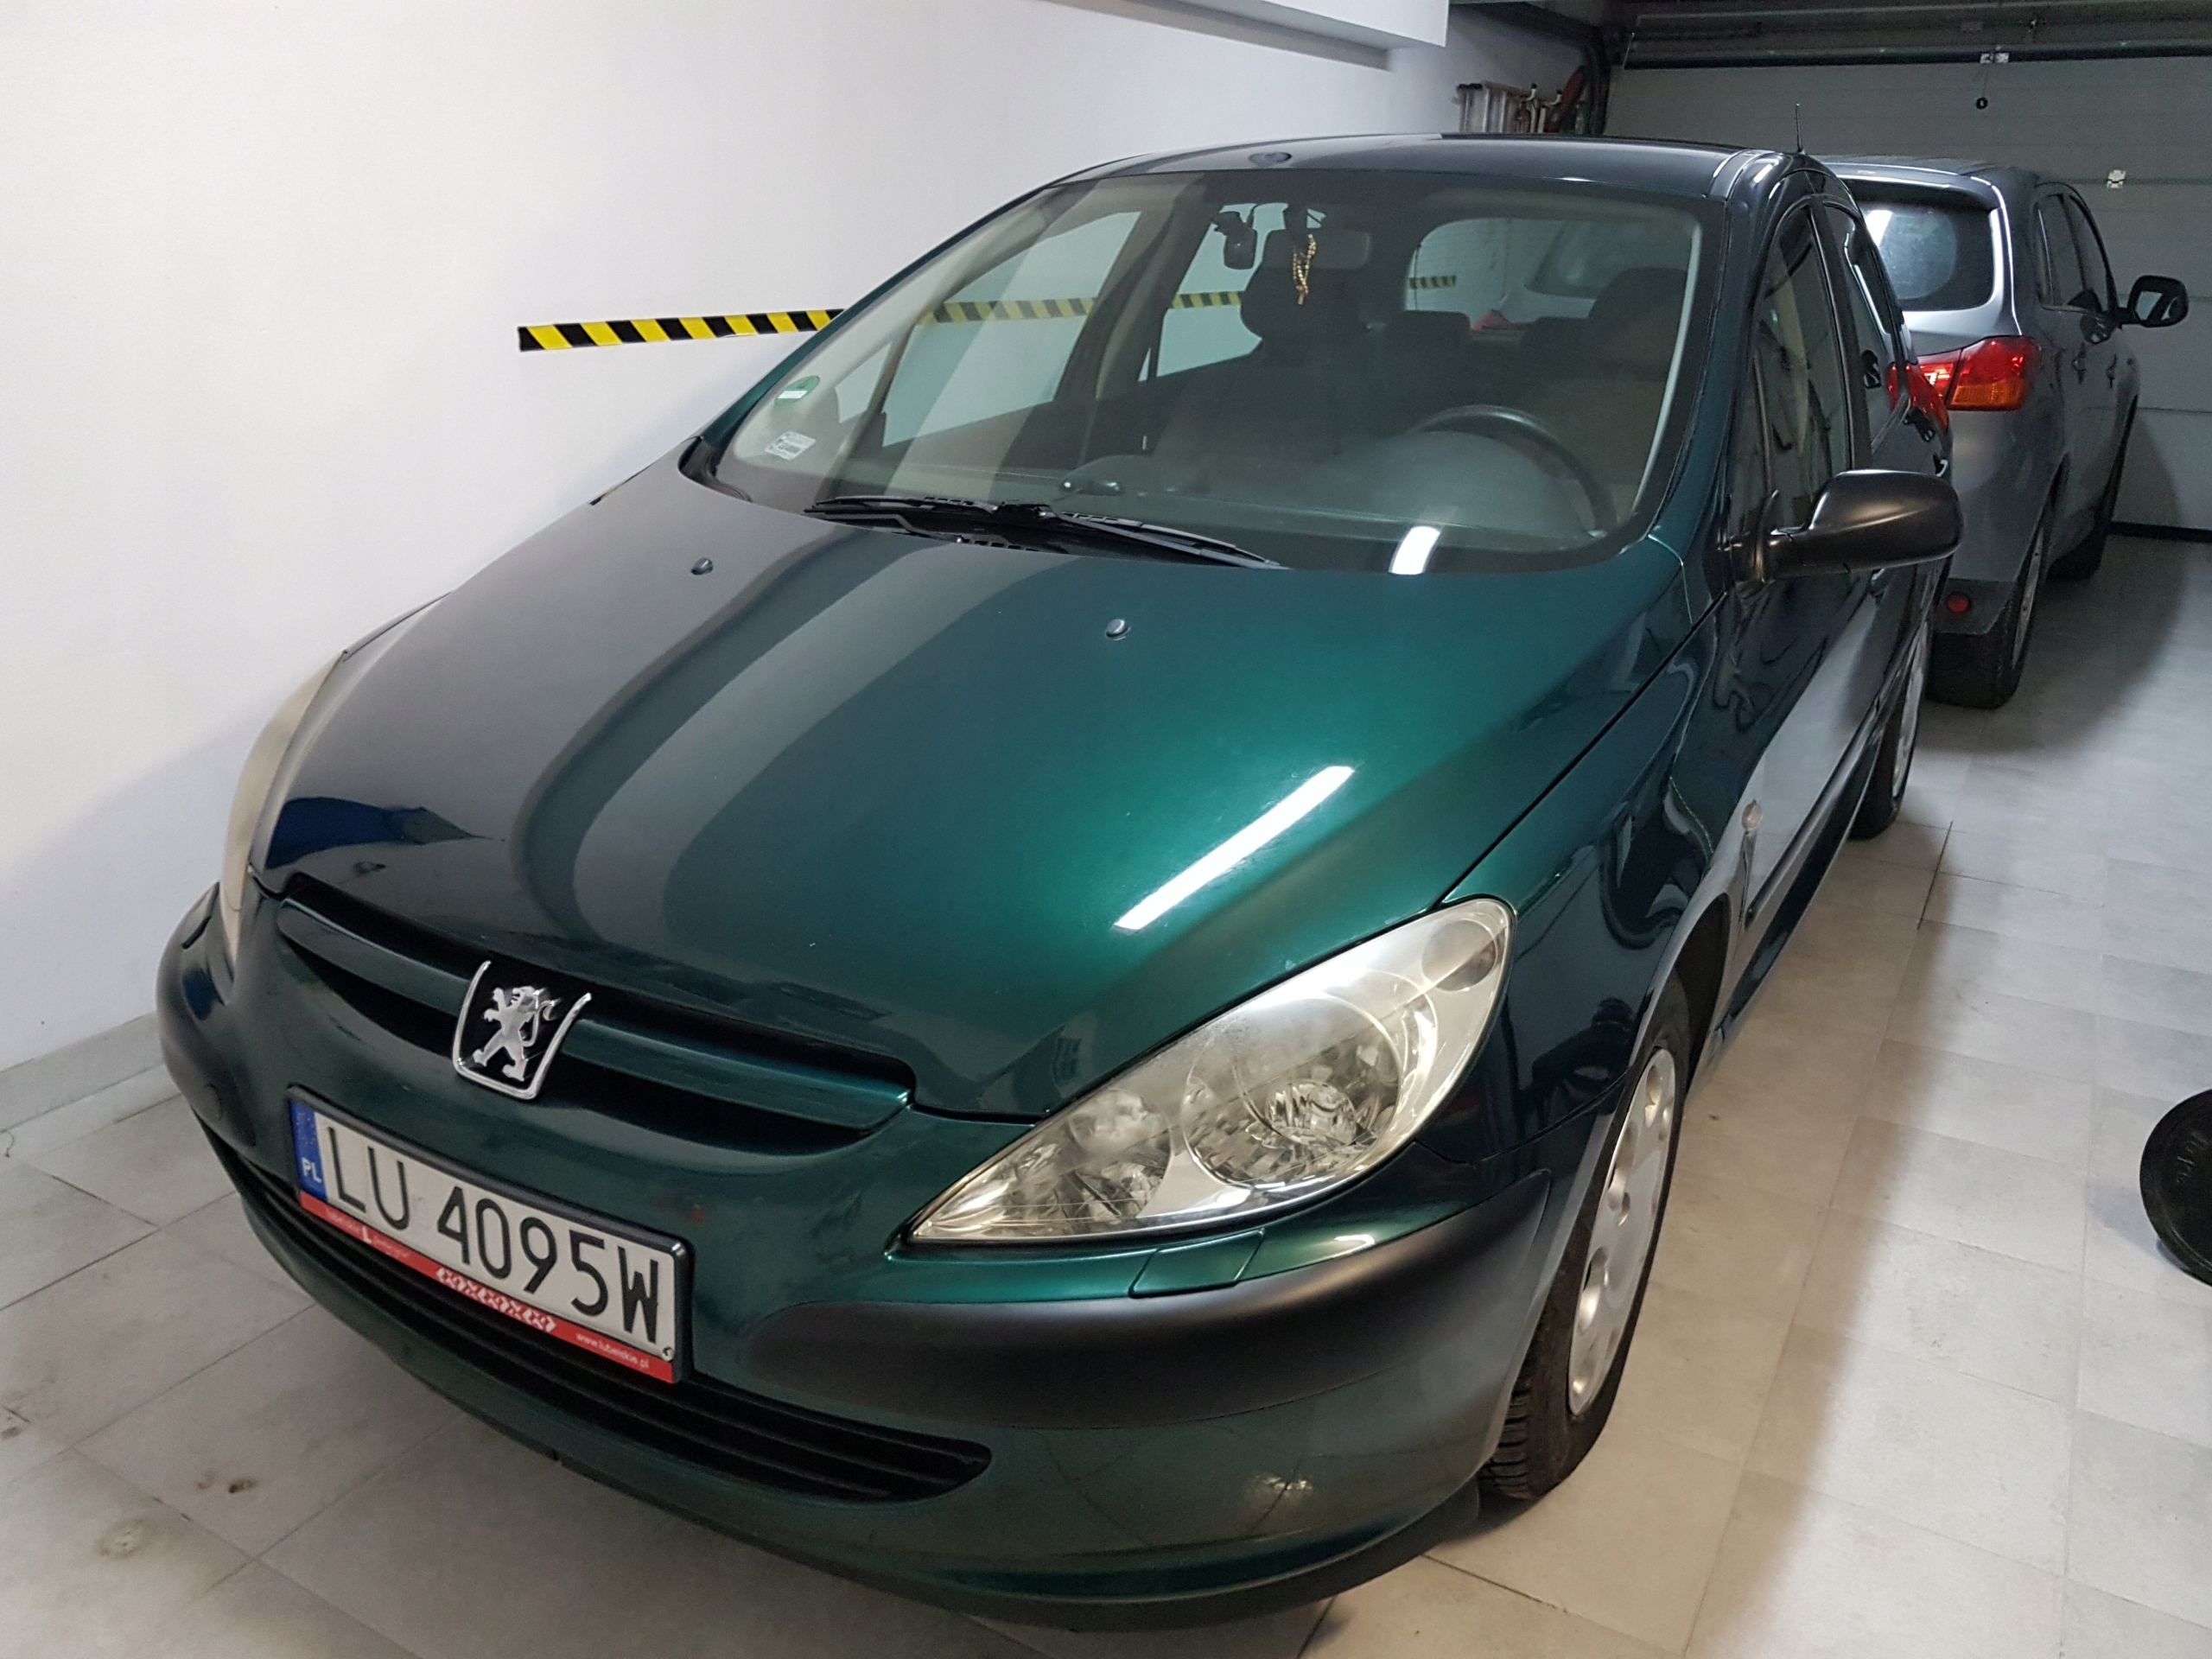 Peugeot 307 1,6 benzyna 5 drzwi